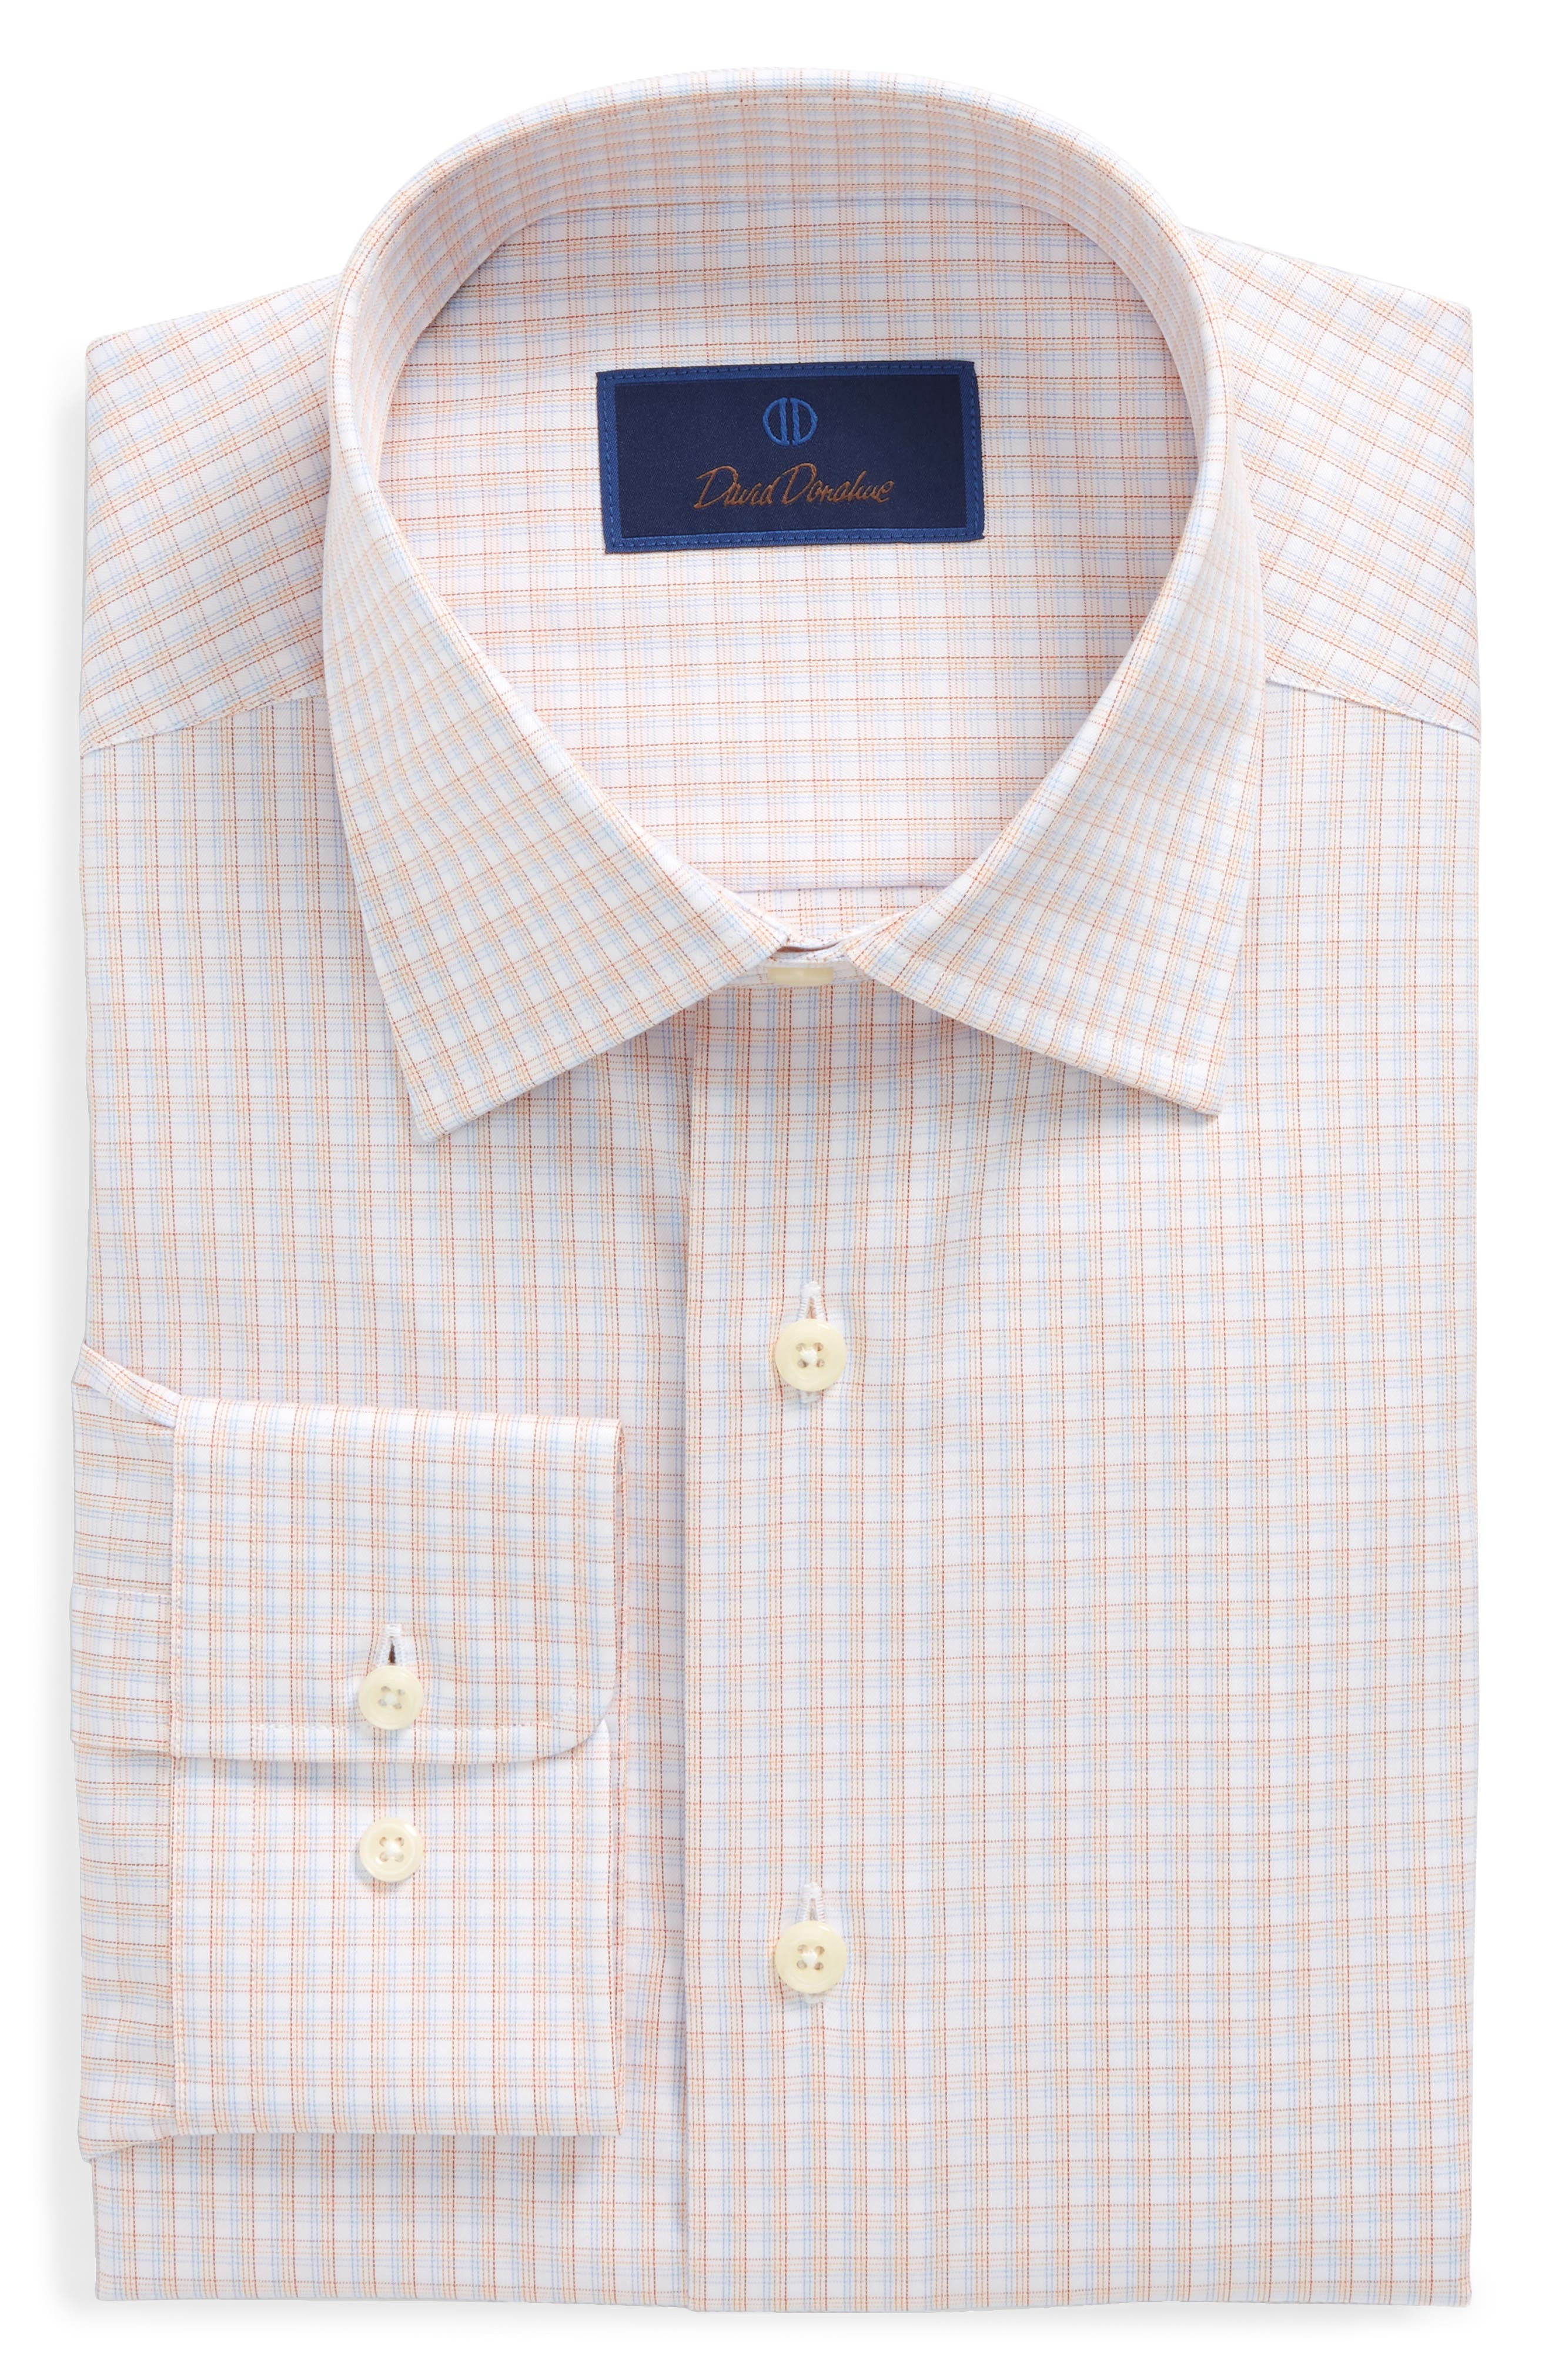 David Donahue Regular Fit Check Dress Shirt